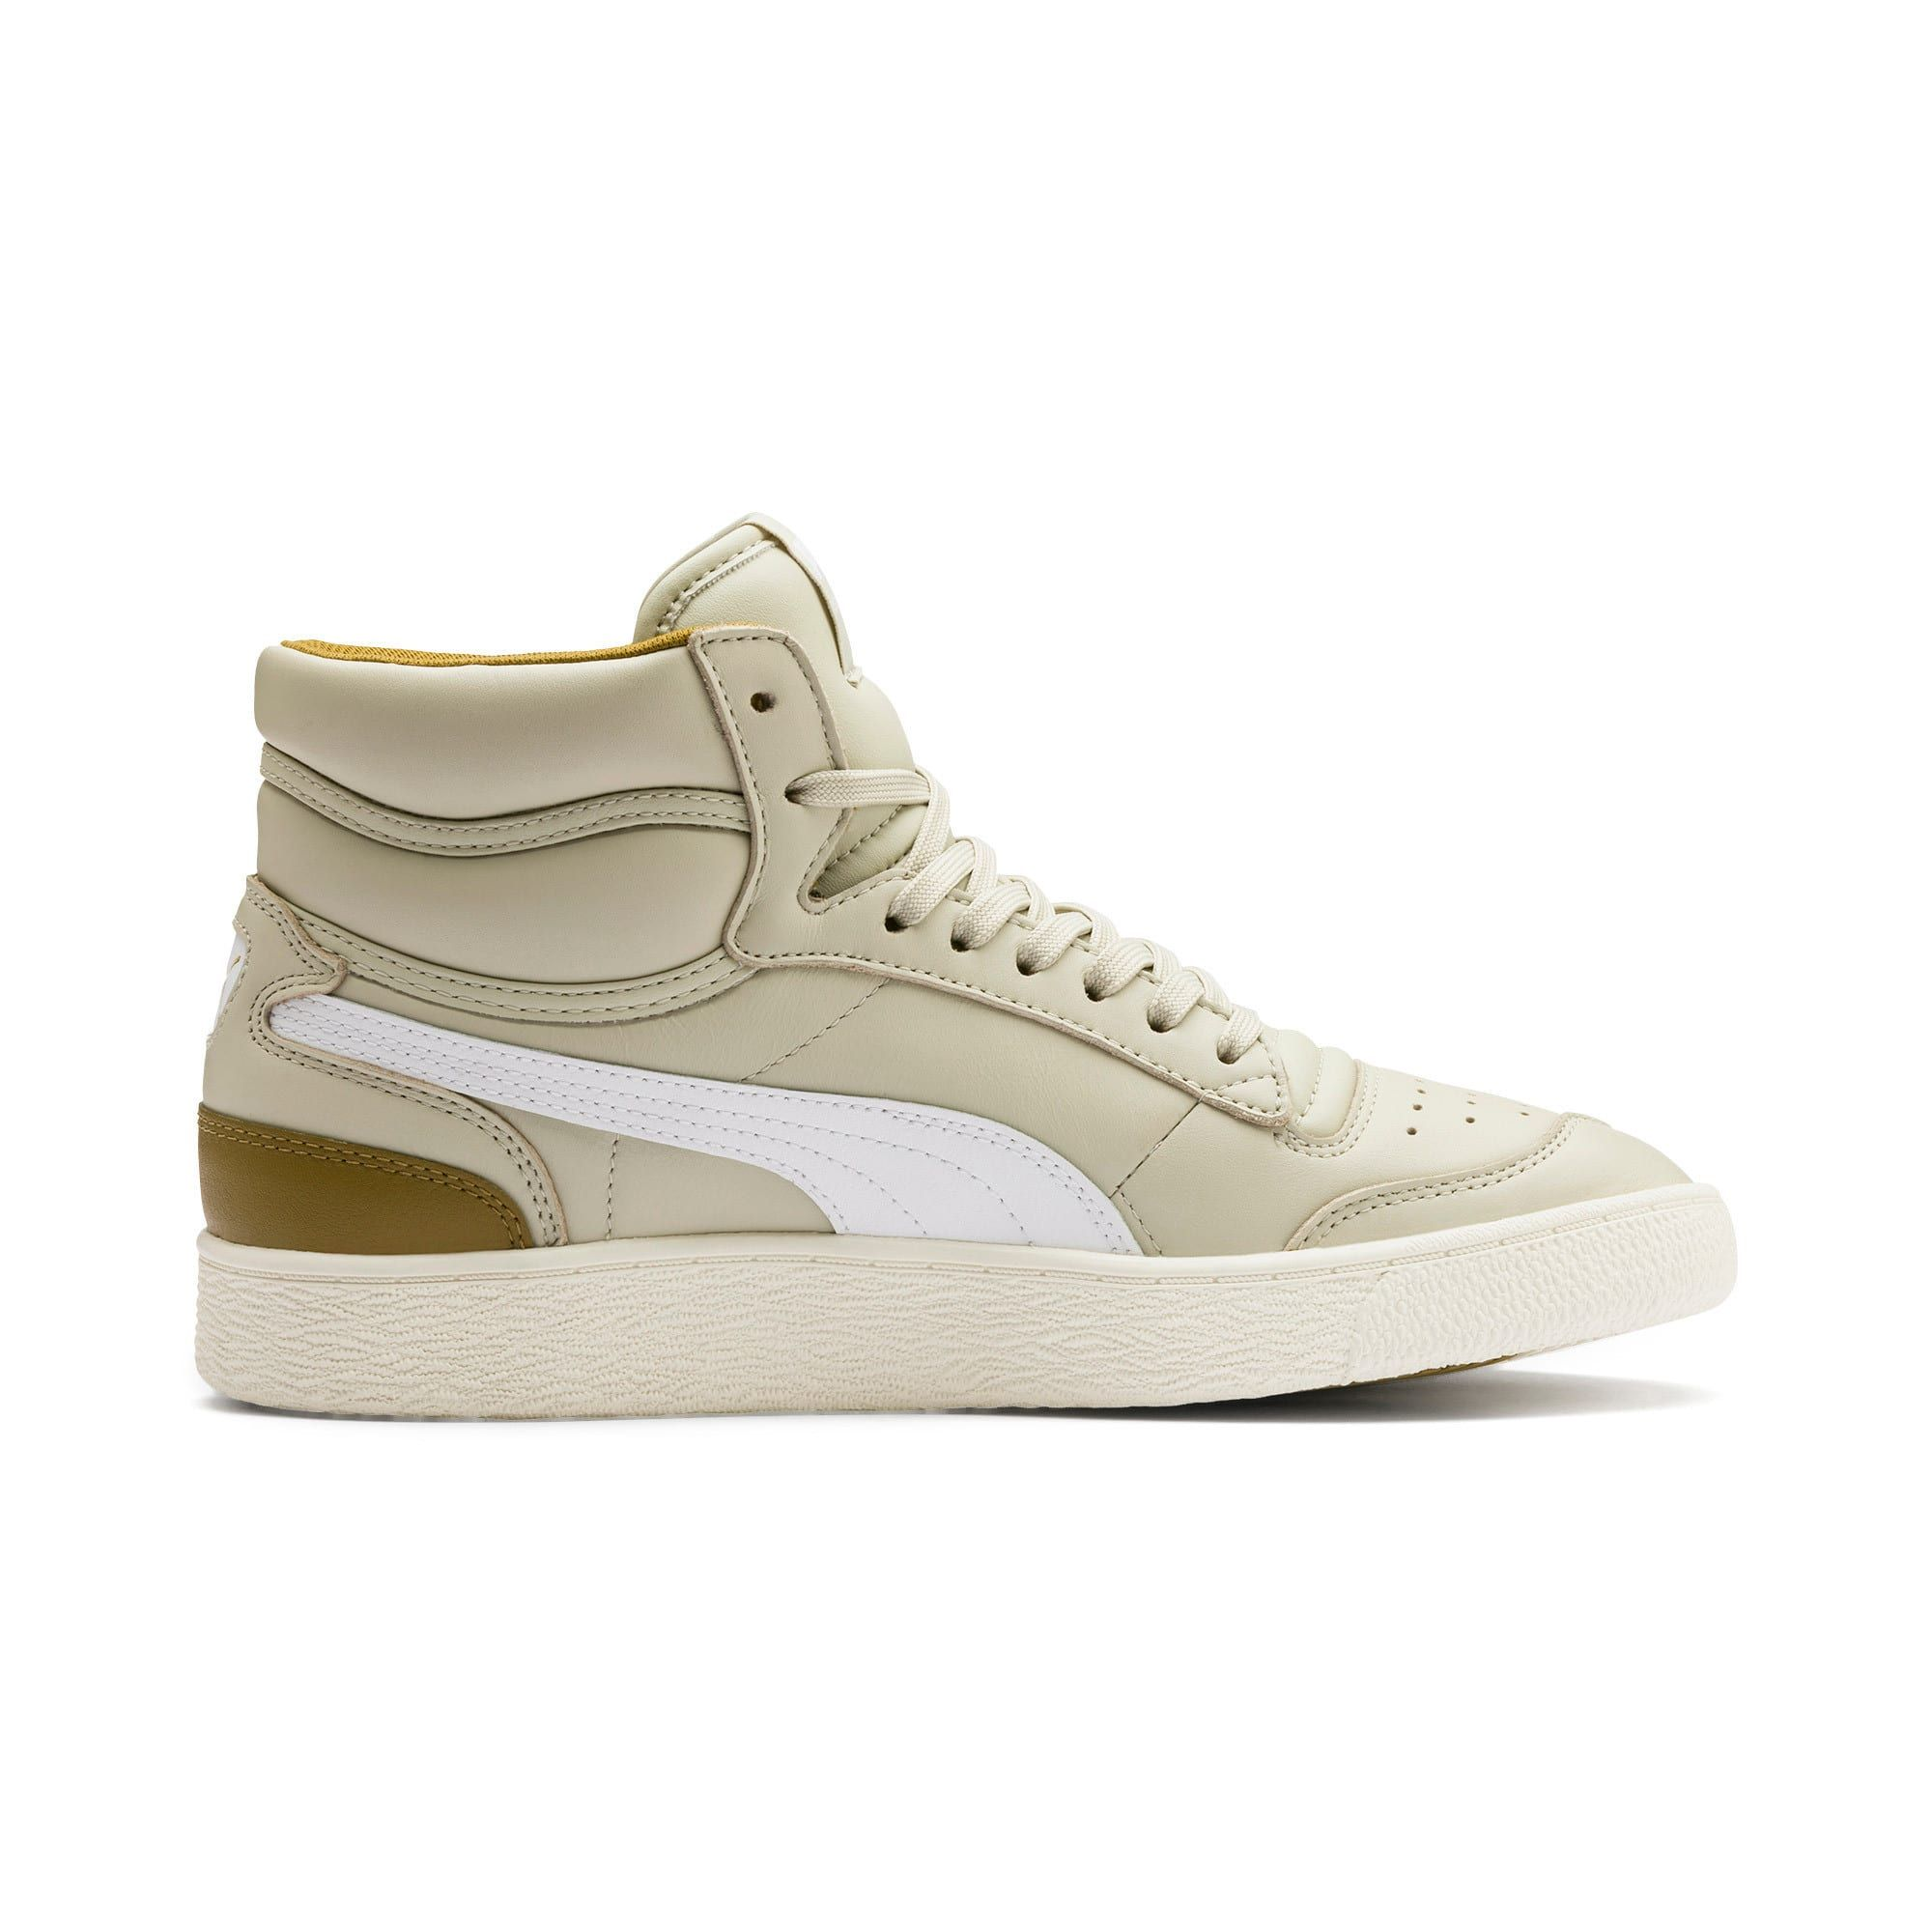 Men's PUMA Ralph Sampson Mid Trainers, Overcast/Grey/Marshmallow, size 13, Shoes